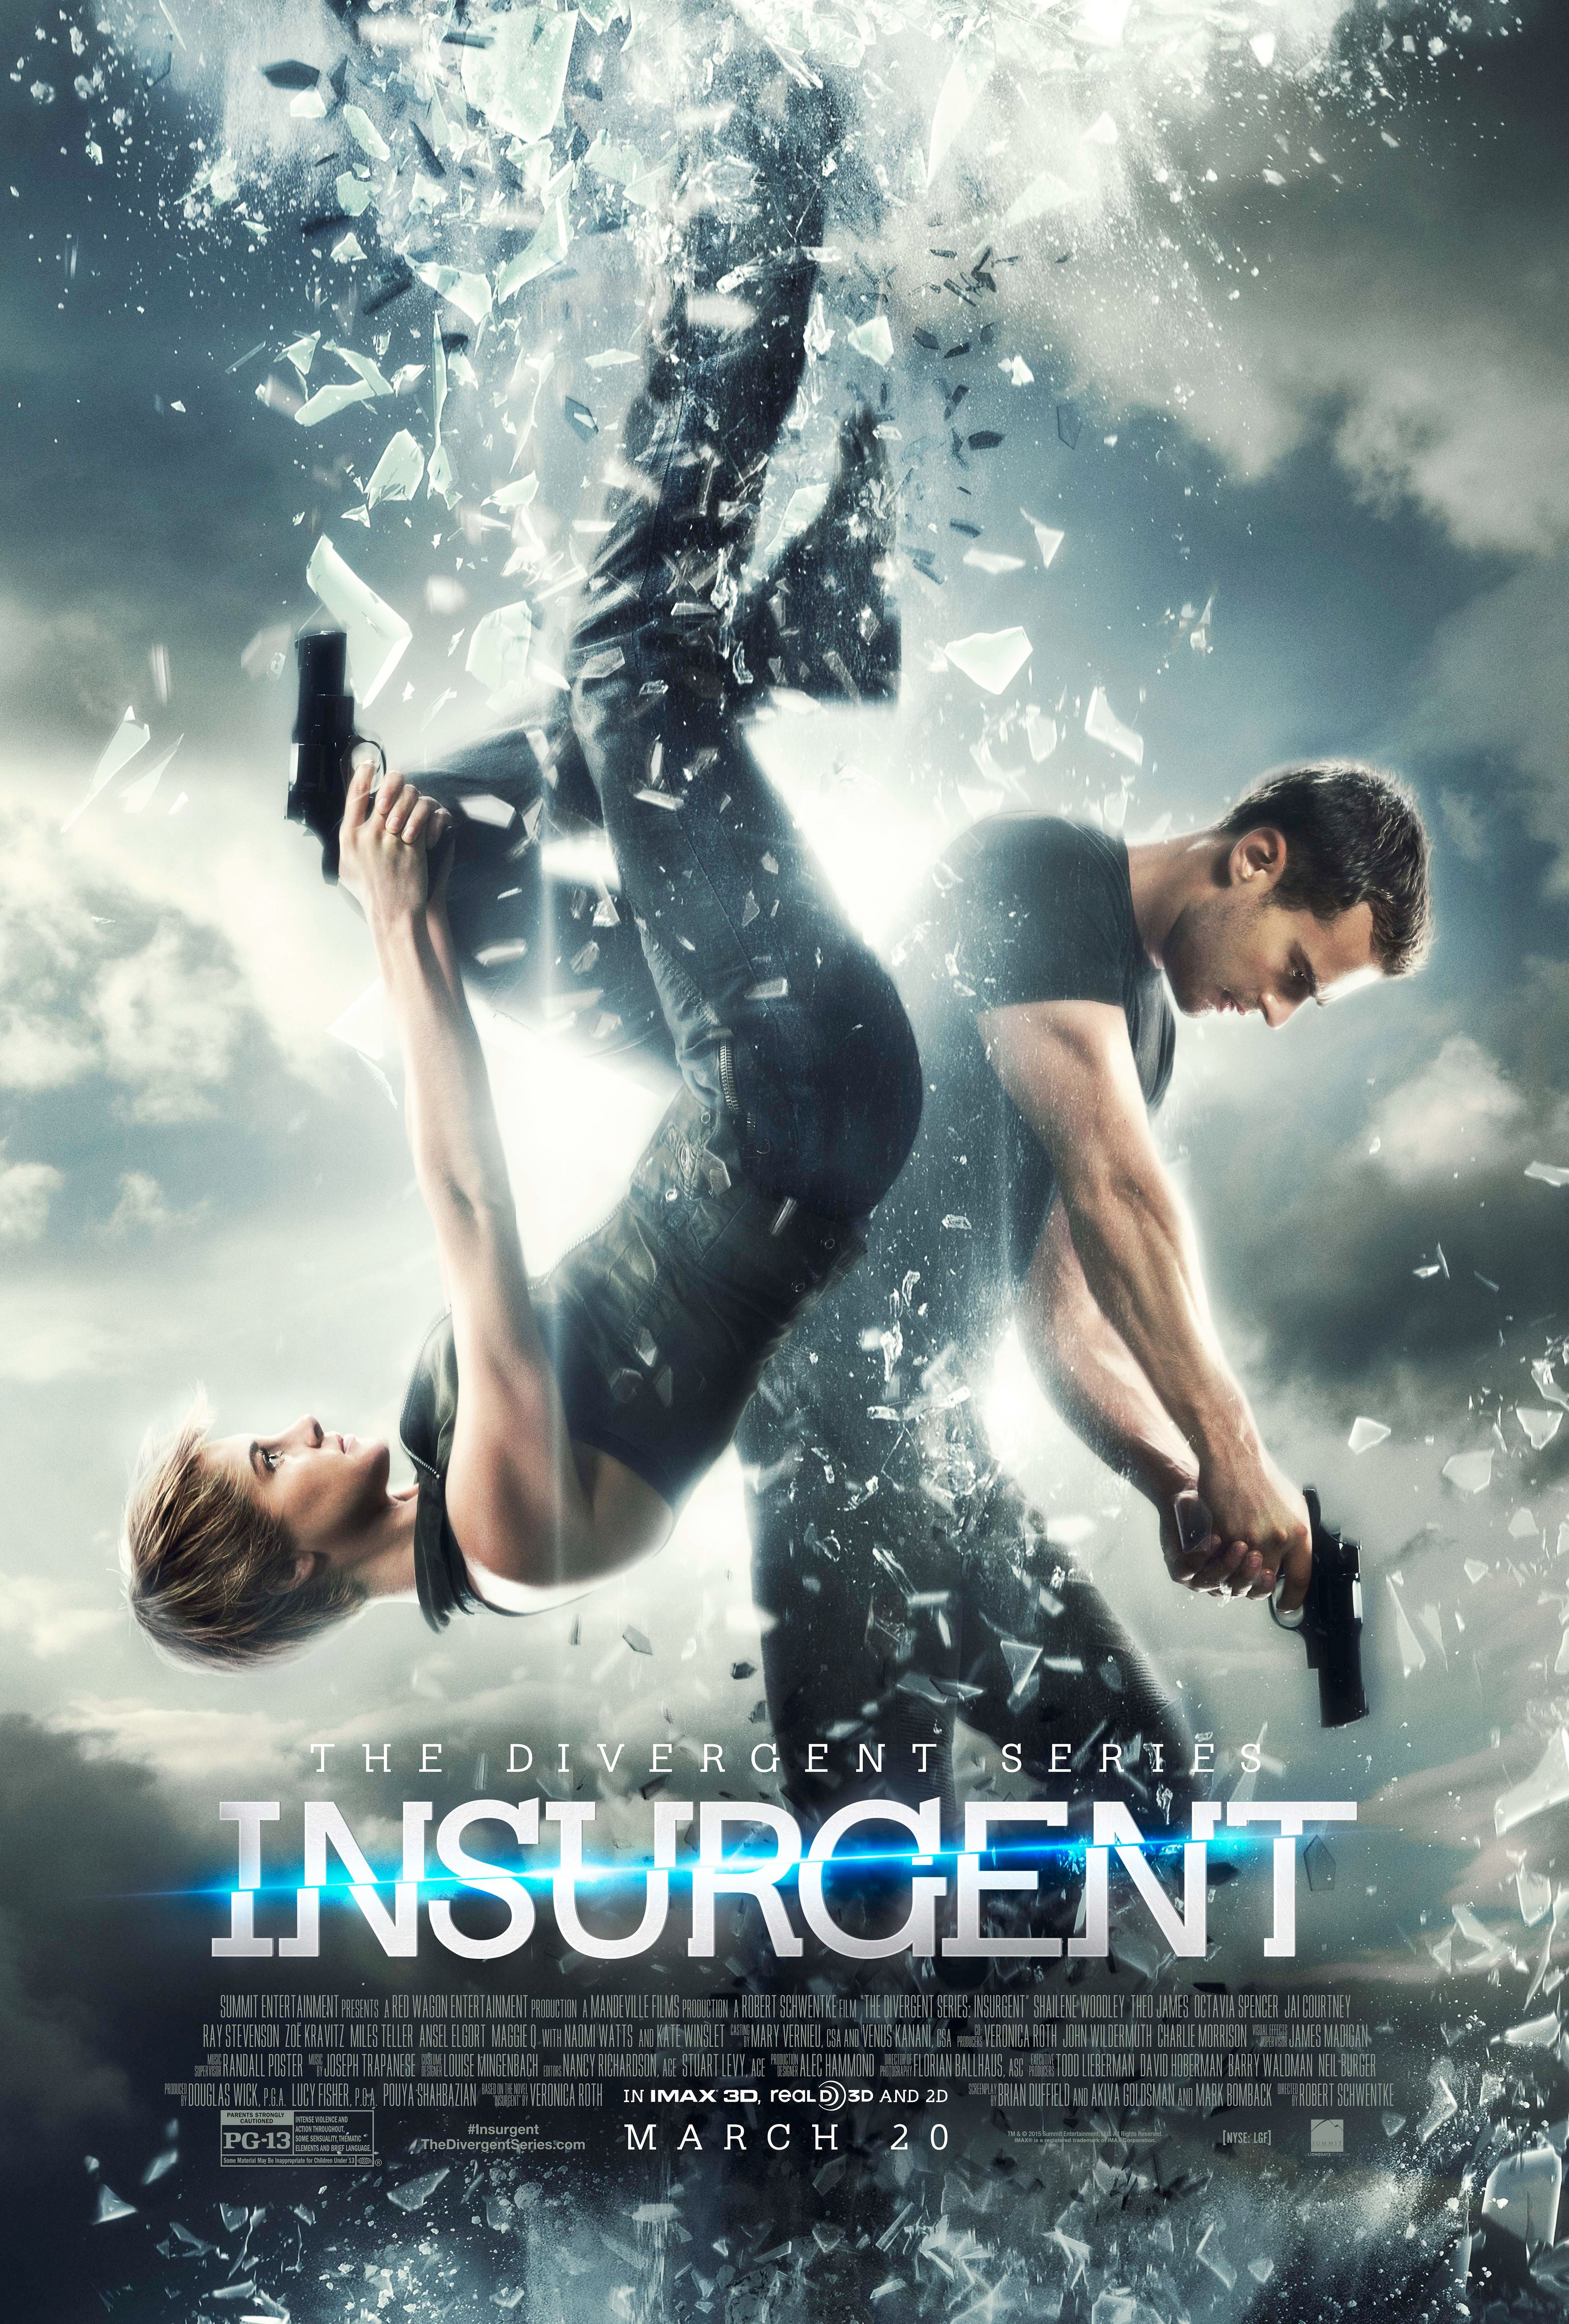 Exclusive New Insurgent Clip Finds Tris in Amity | Collider